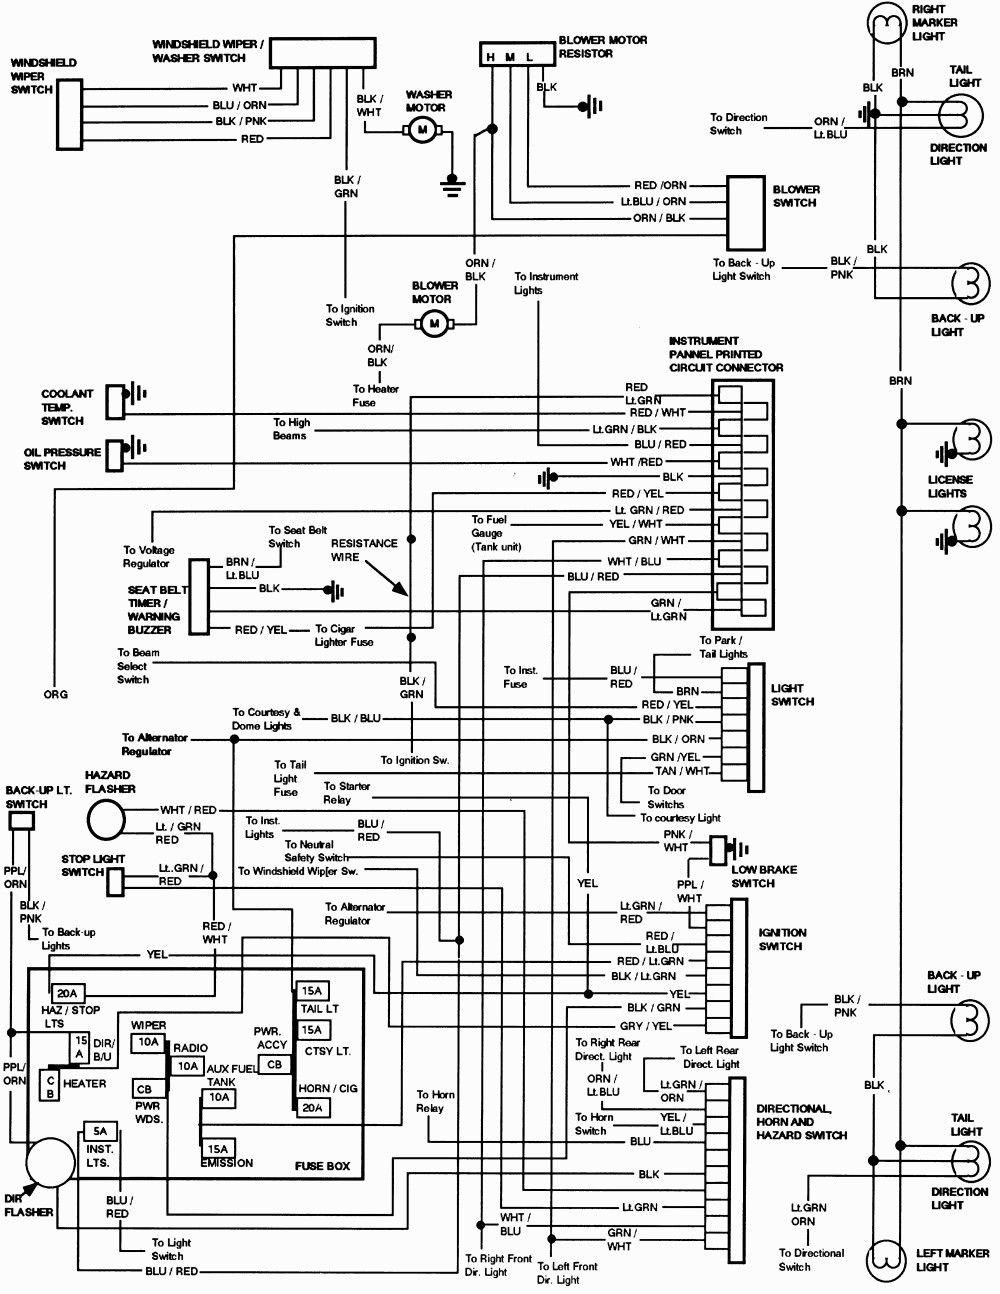 1981 f150 wiring diagram read all wiring diagram 1975 Ford F-250 Wiring Diagram